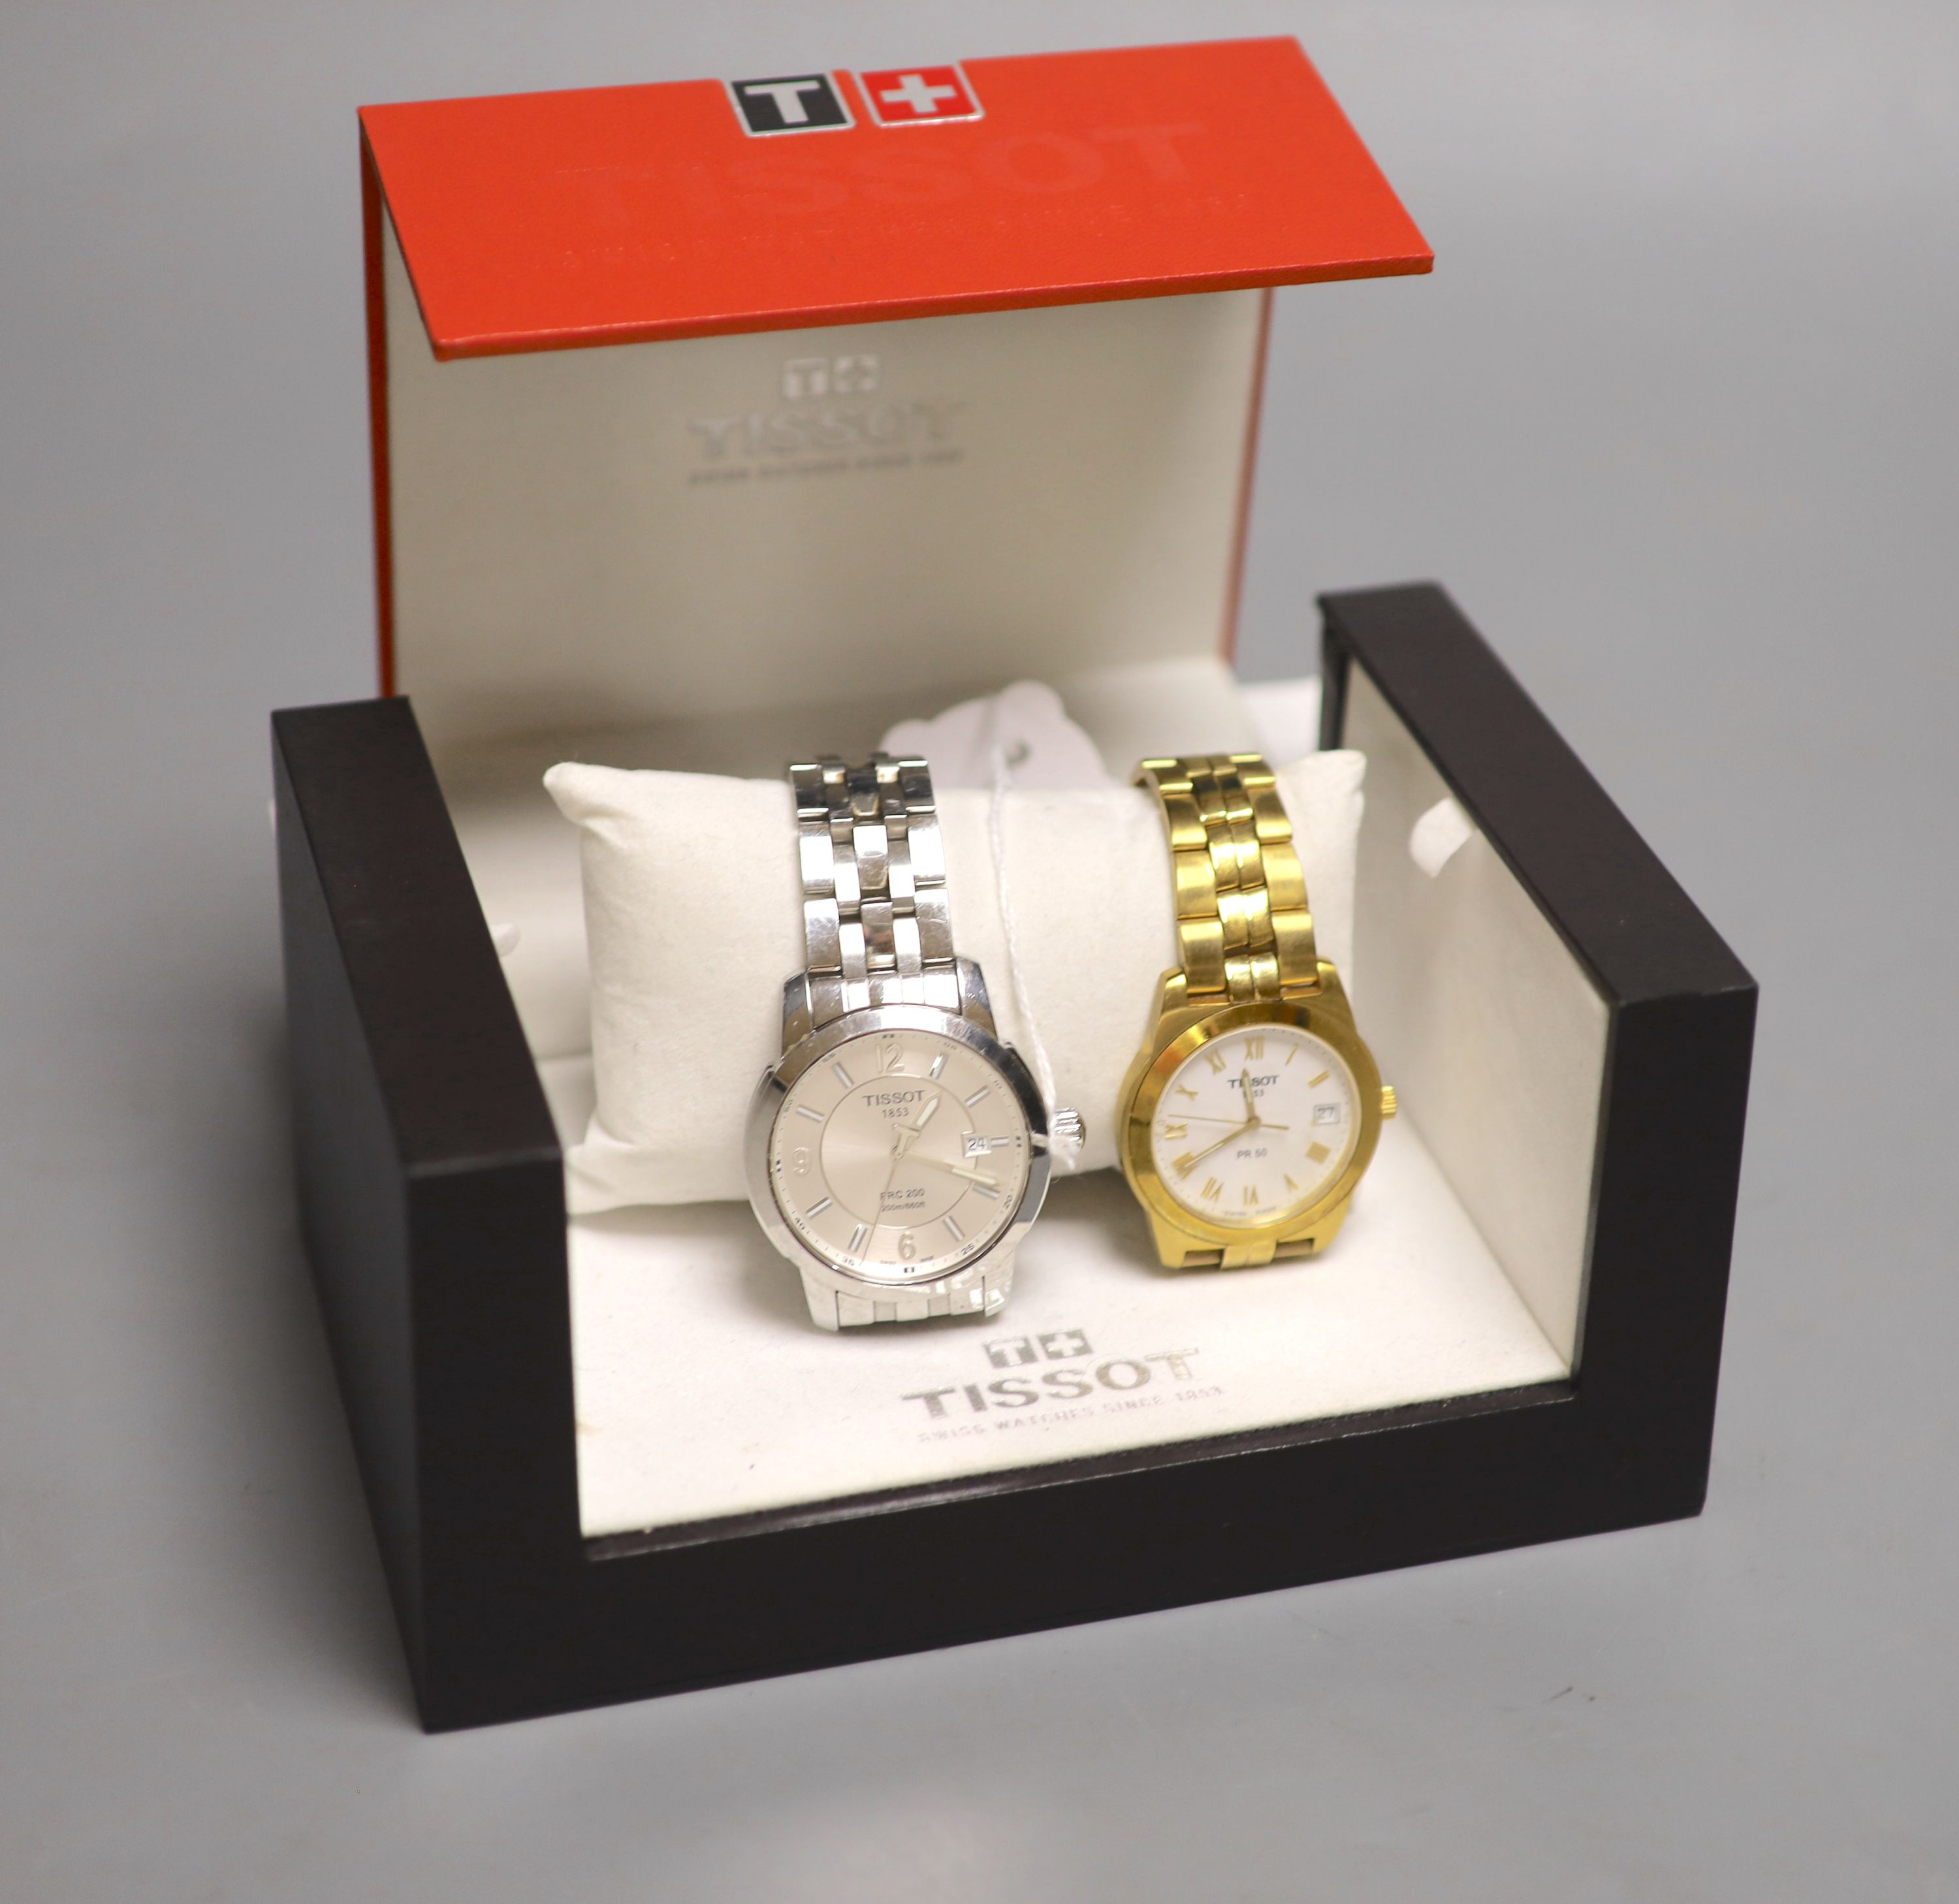 A Tissot 1853 PRC 200 gentleman's stainless steel wristwatch and a Tissot 1853 PR 50 gold-plated